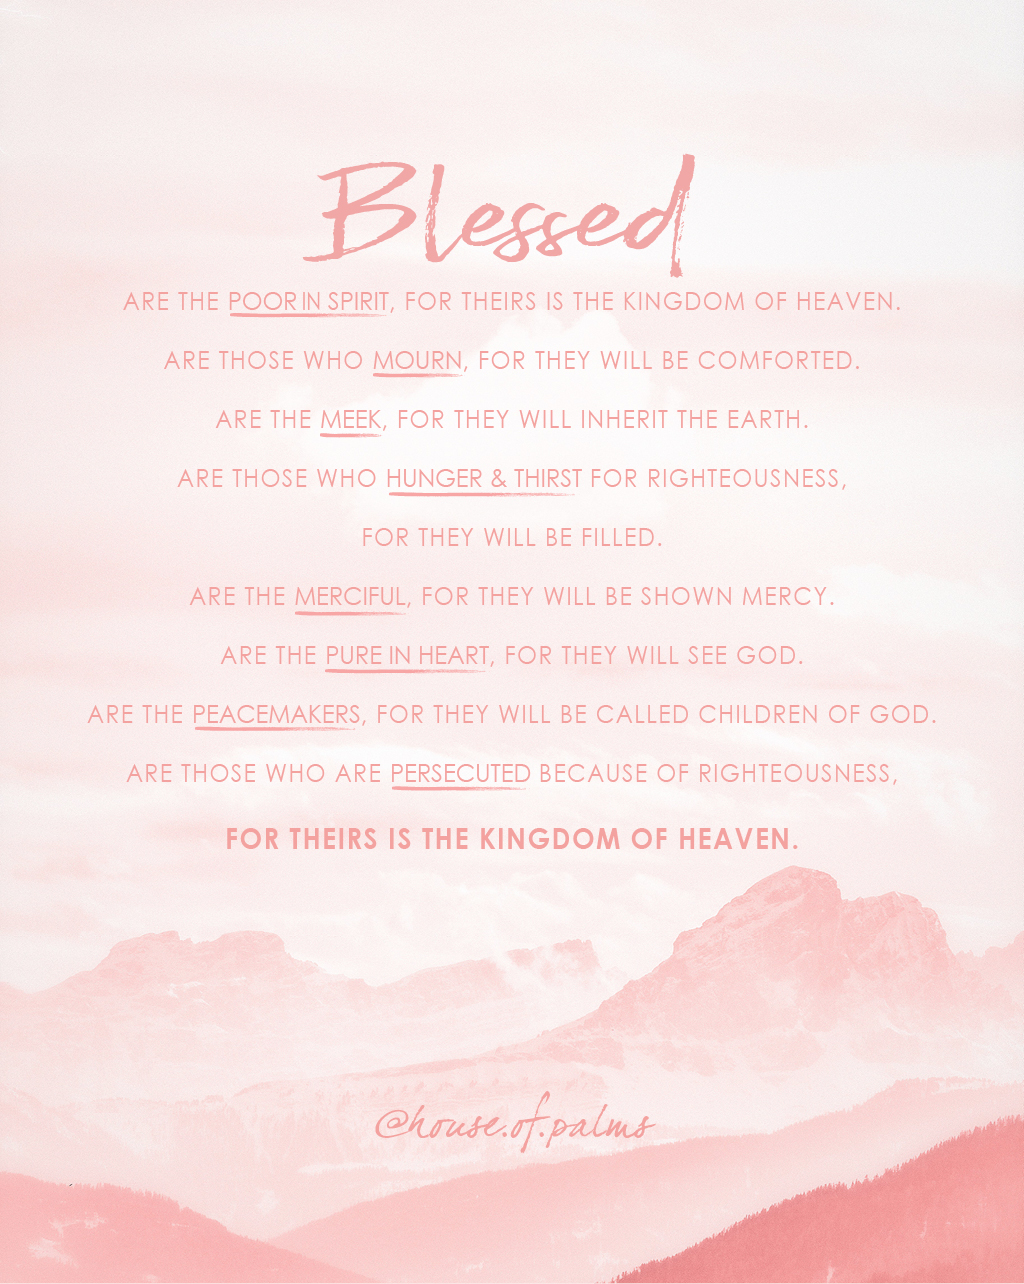 Beatitudes - Matthew 5 - Sermon on the Mount - blessed are the poor in spirit